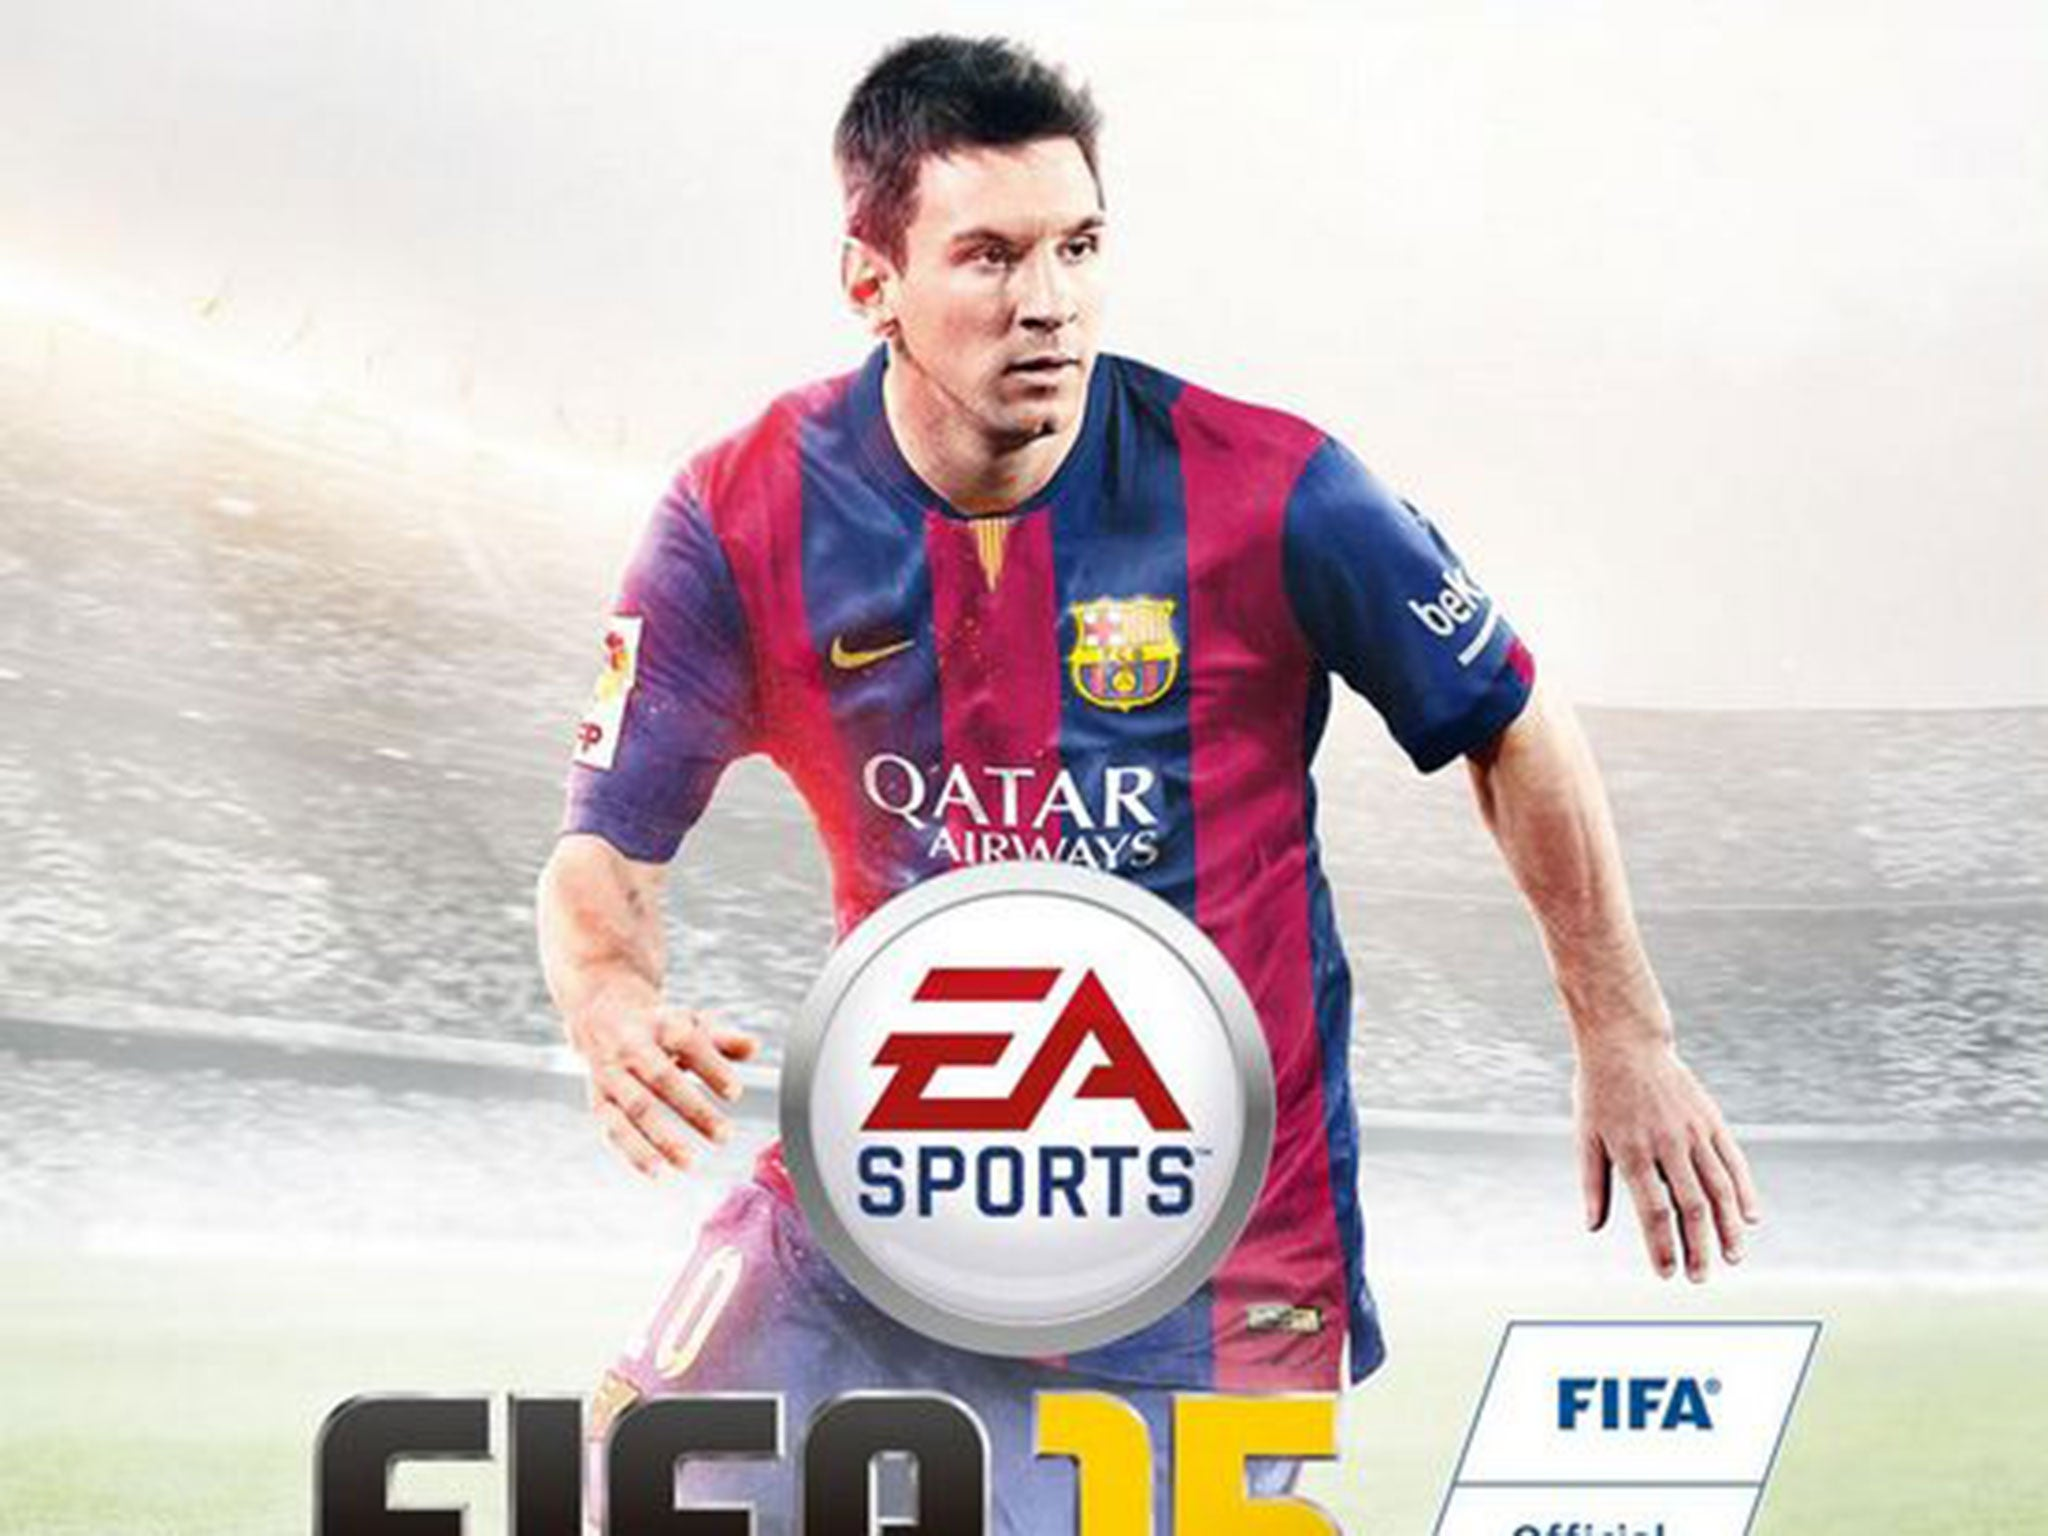 fifa 15: lionel messi named global cover star for new game that's